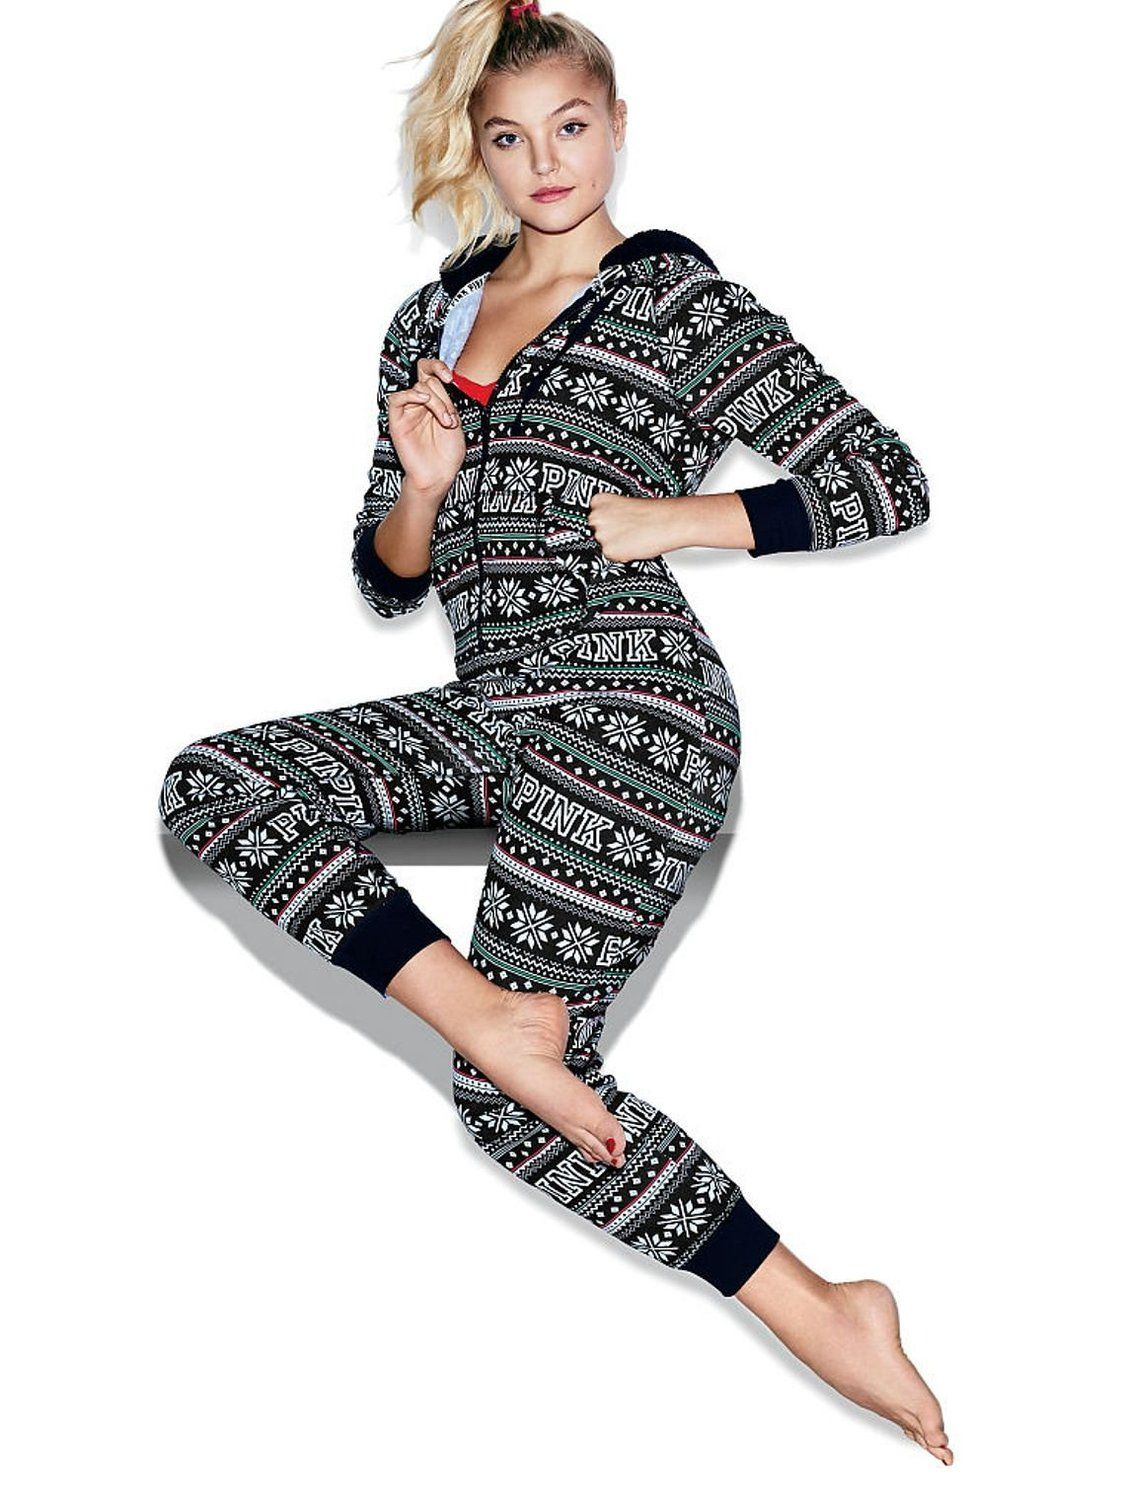 Victoria's Secret PINK Onesie Pajamas at Amazon Women's